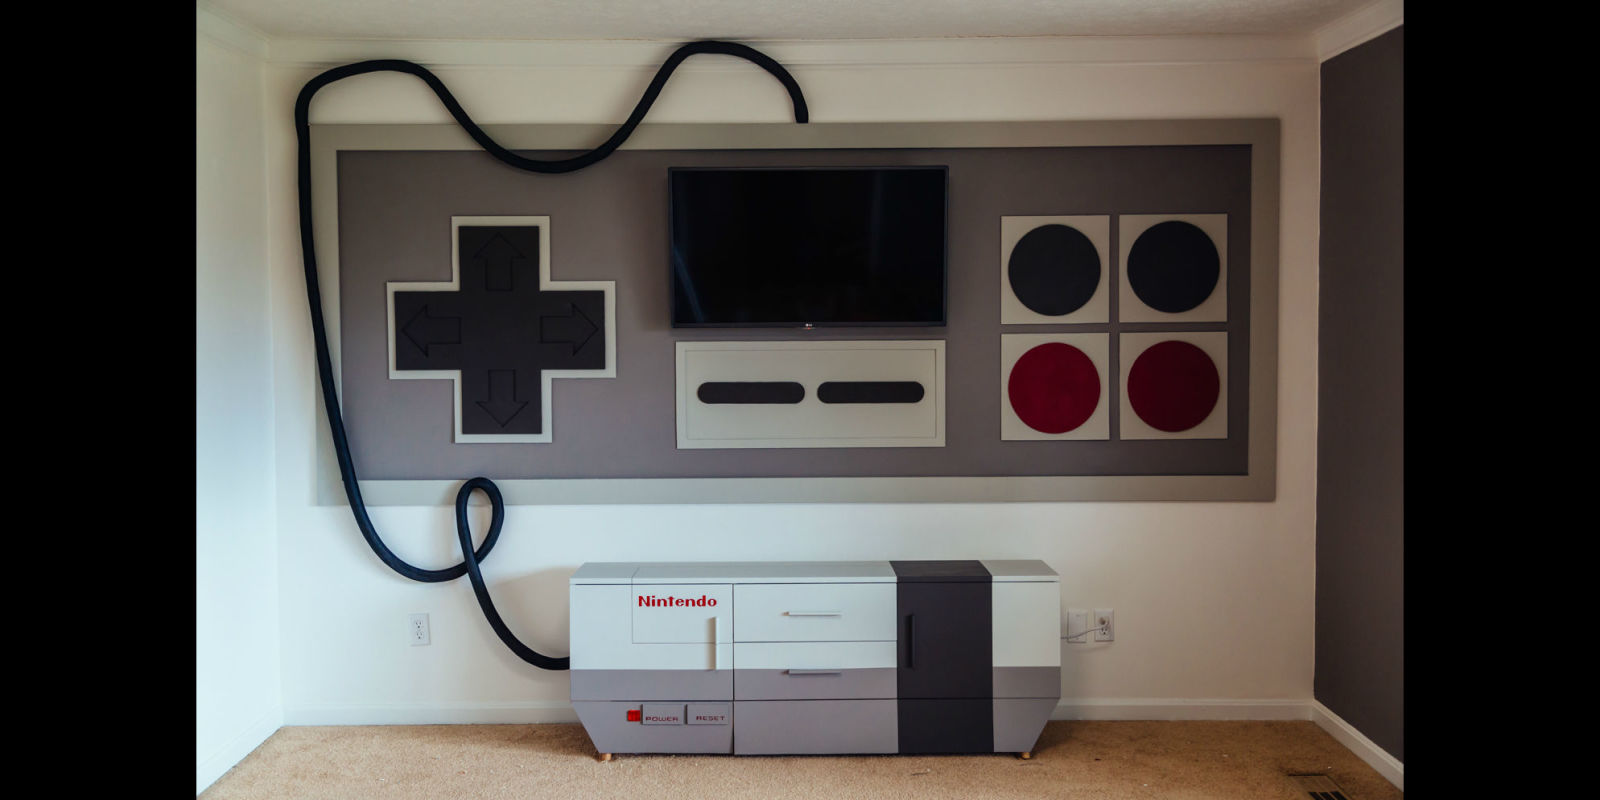 Check out this article and get 10 amazing game room ideas and more. Game Room Ideas: Turn Your Entire Wall Into a Giant Nintendo